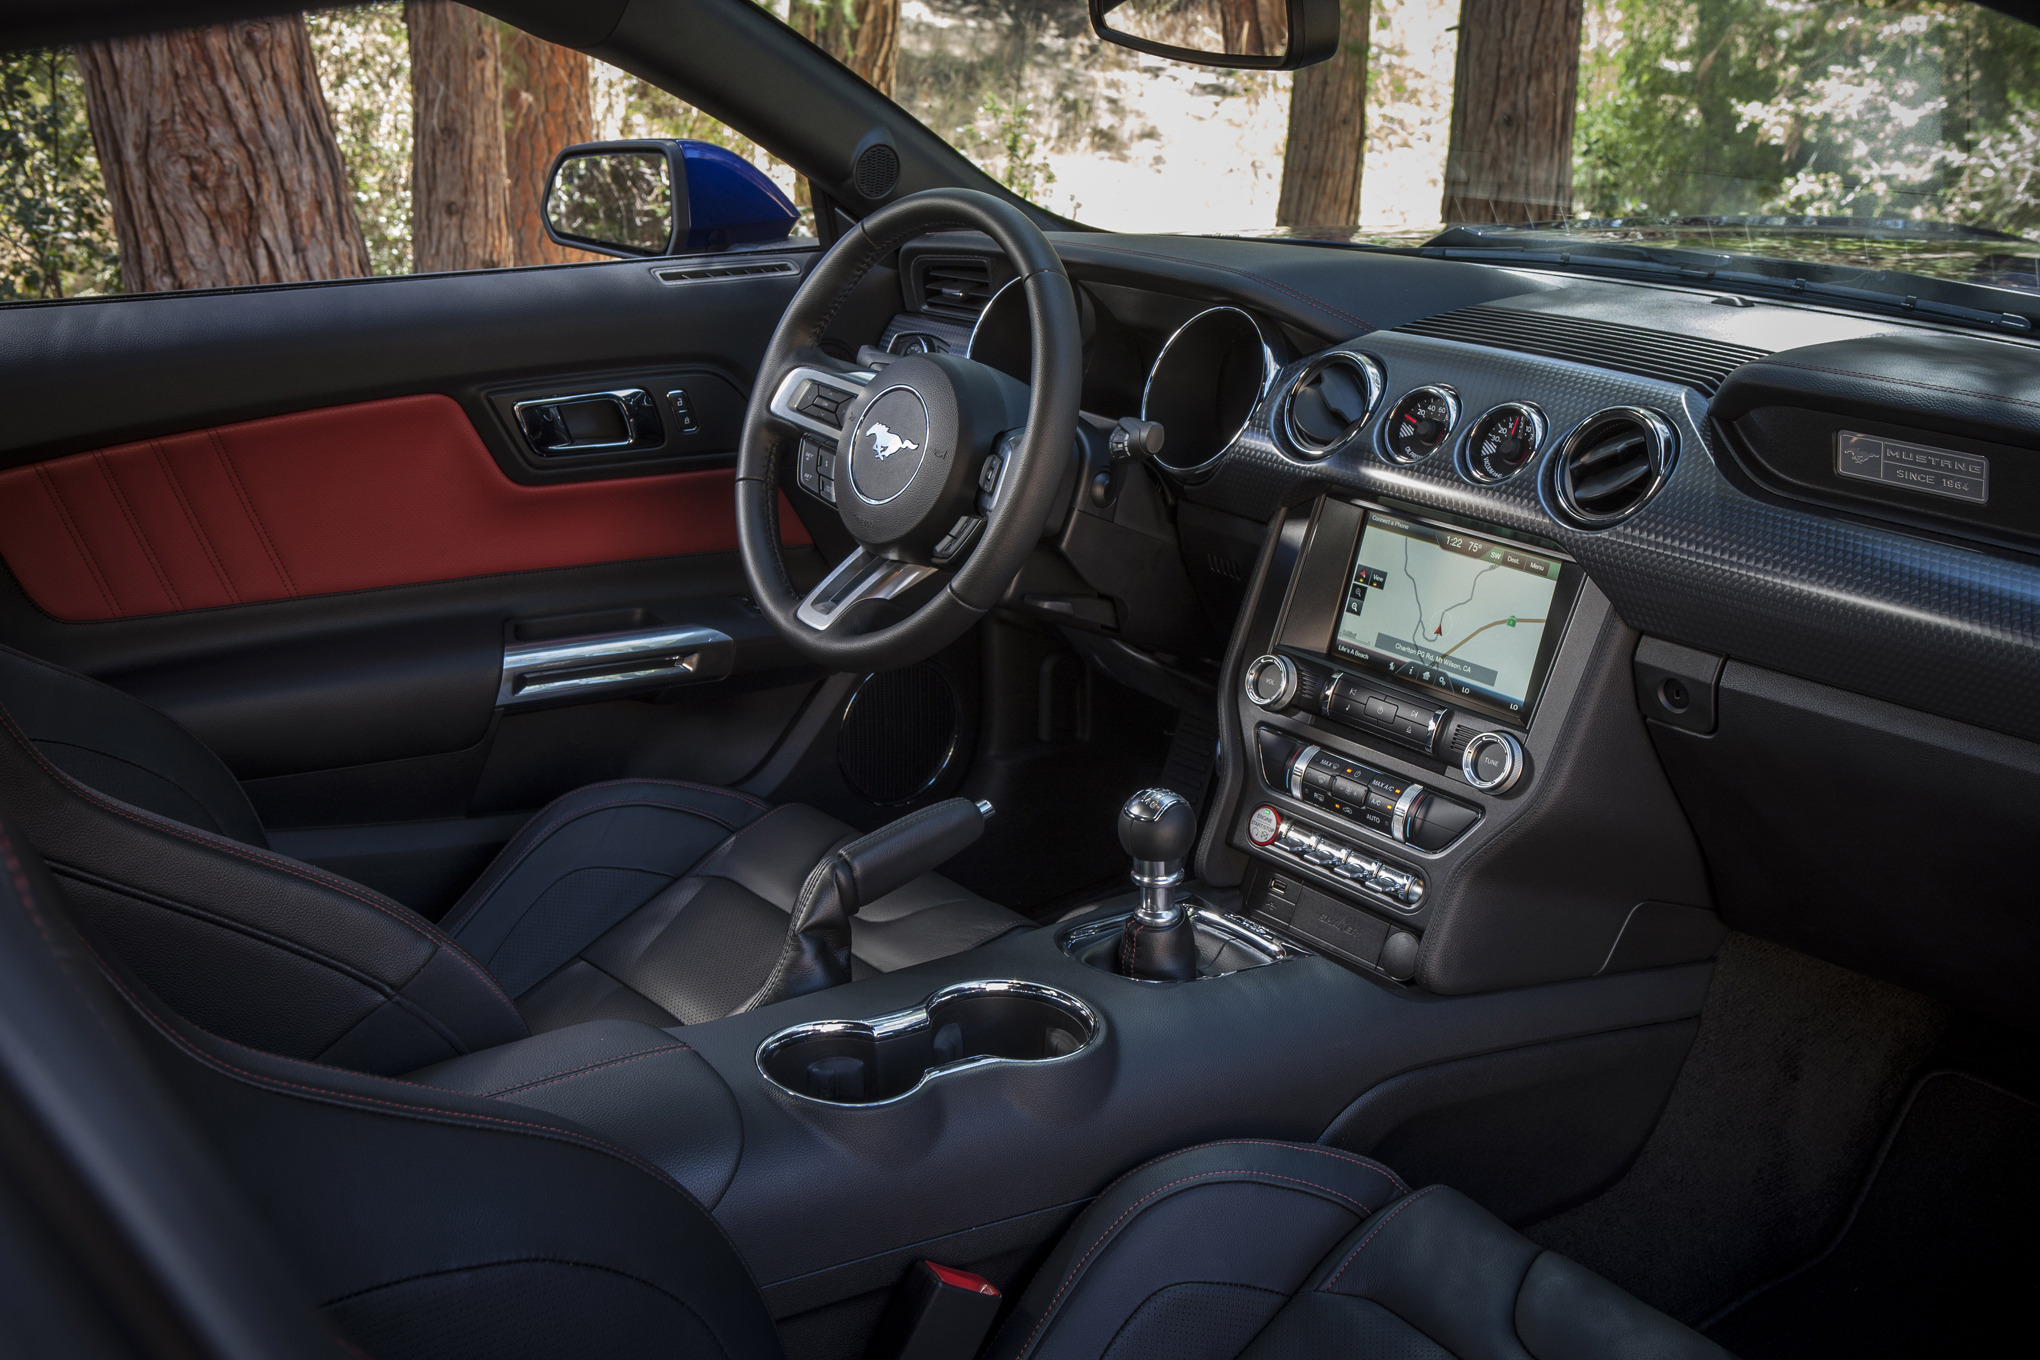 Mustang 5 reasons to go honda and 5 more to get the ford motortrend